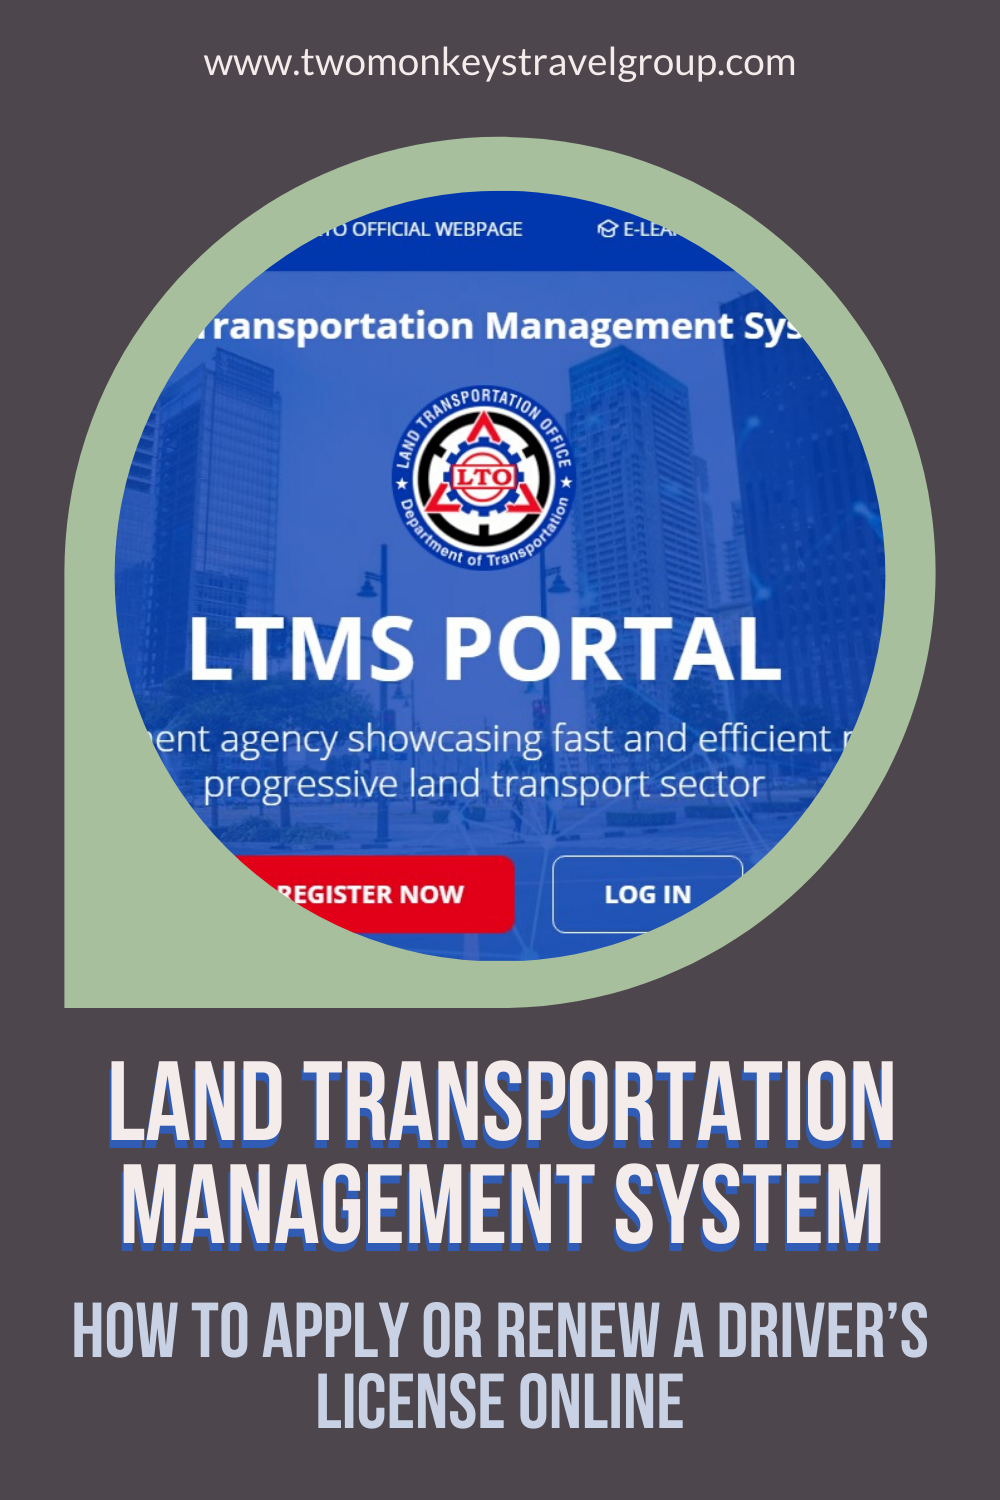 Land Transportation Management System (LTMS) - How to Apply or Renew a Philippine Driver's License Online